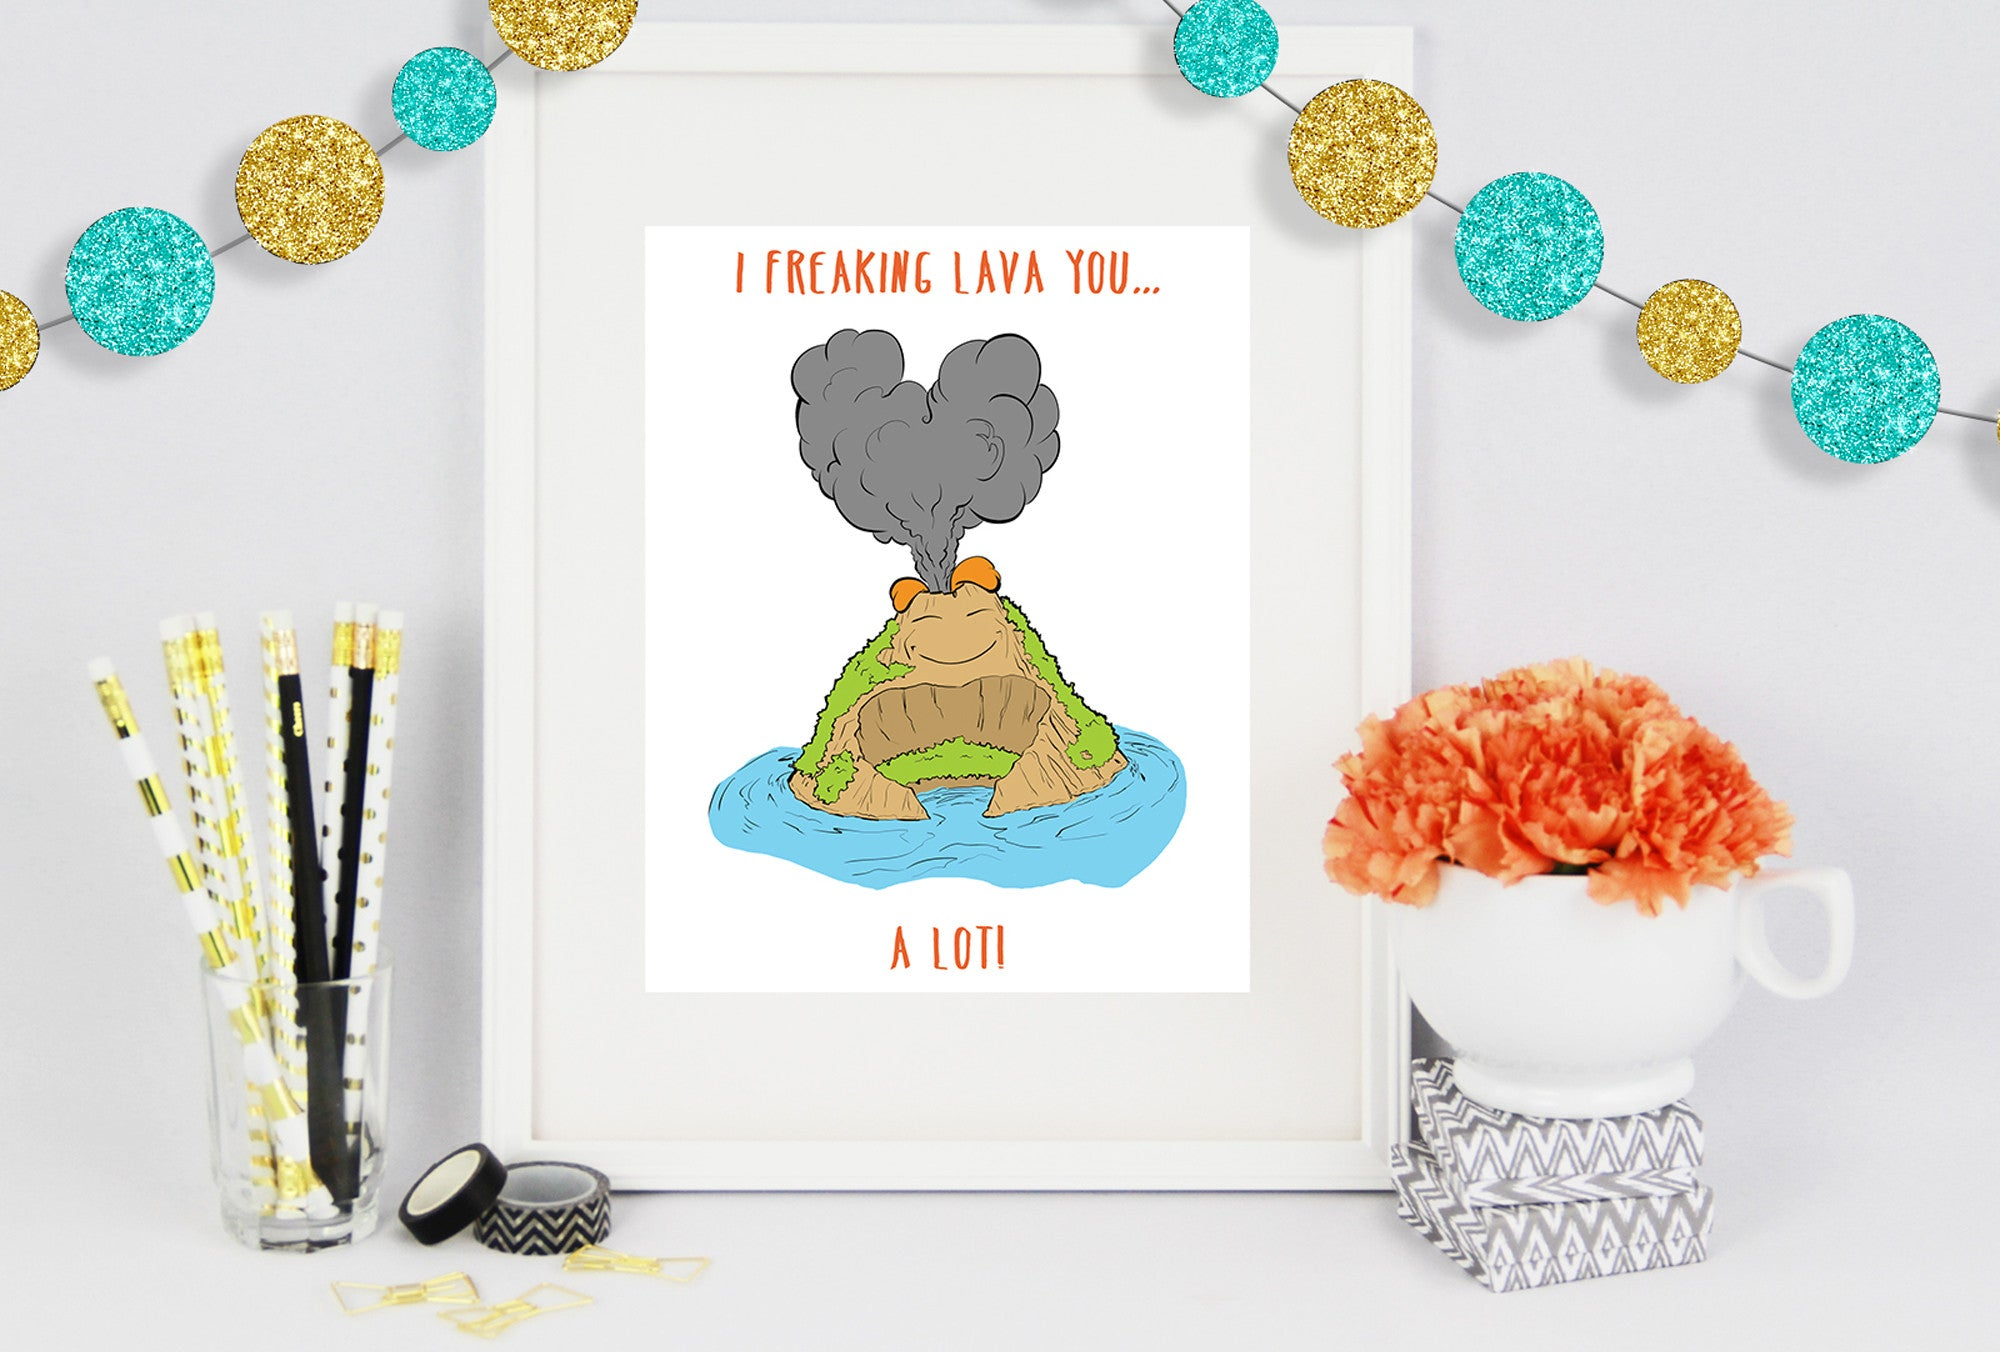 I Freaking Lava You Poster Print